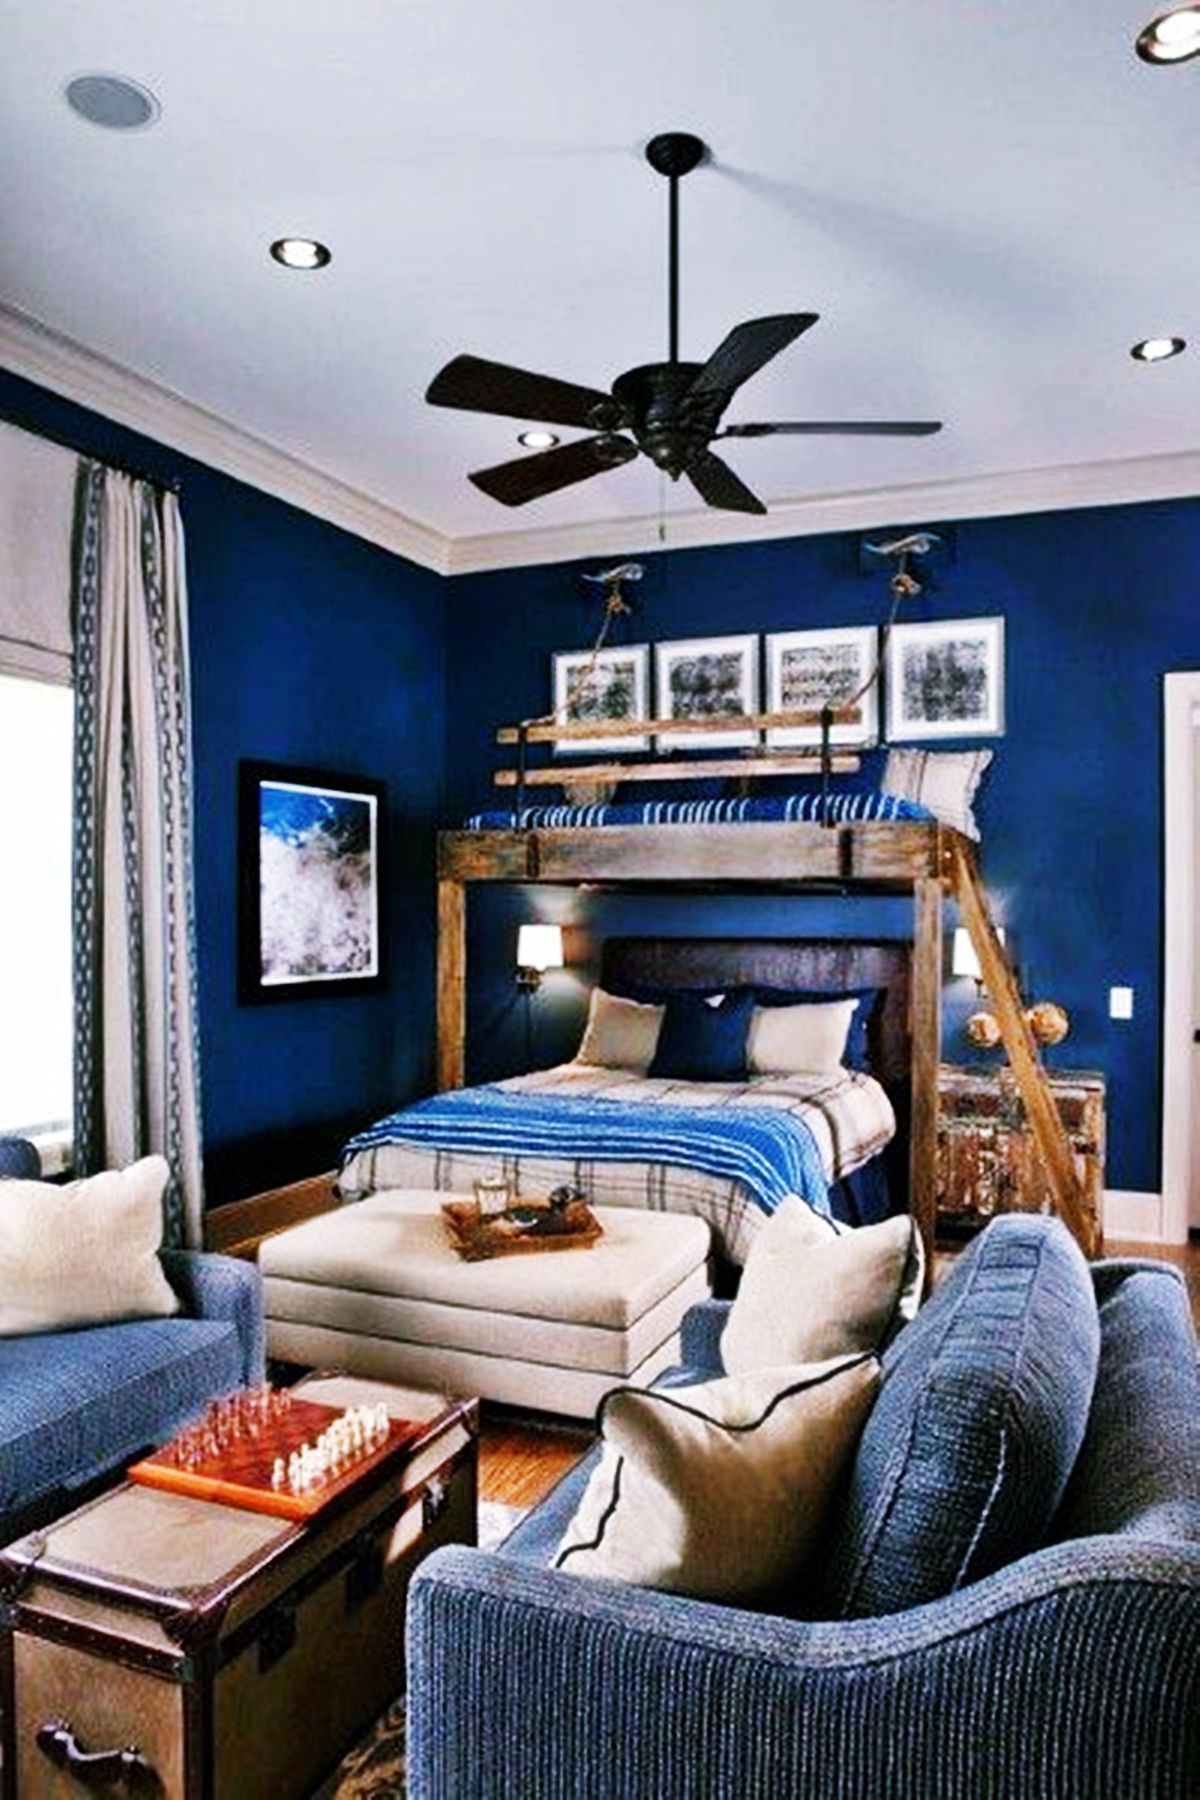 Pin On Bedroom Ideas Boy